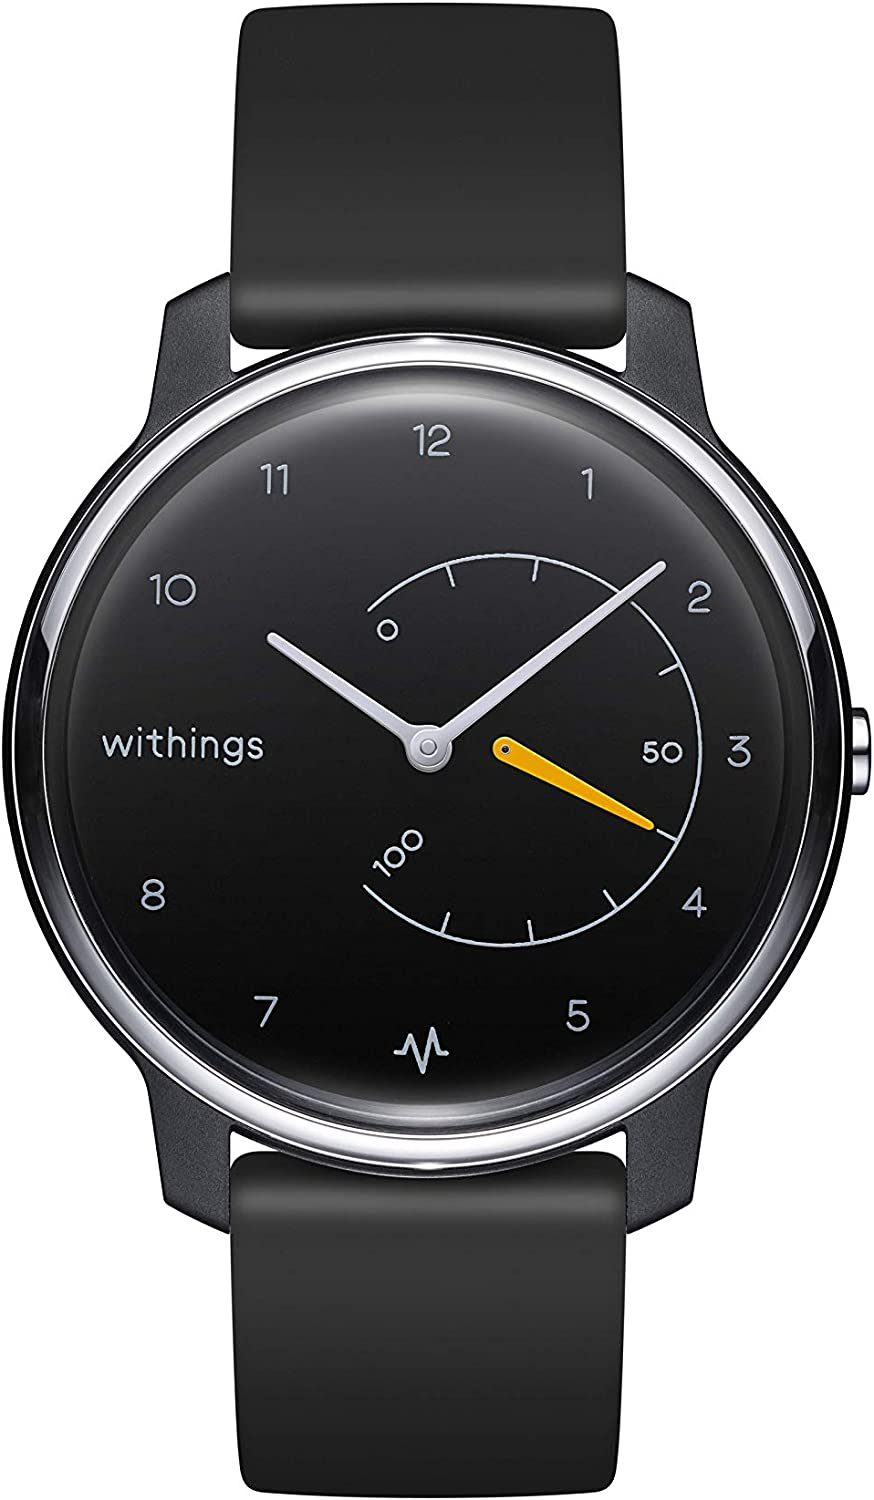 Withings - Reloj Híbrido inteligente con ECG